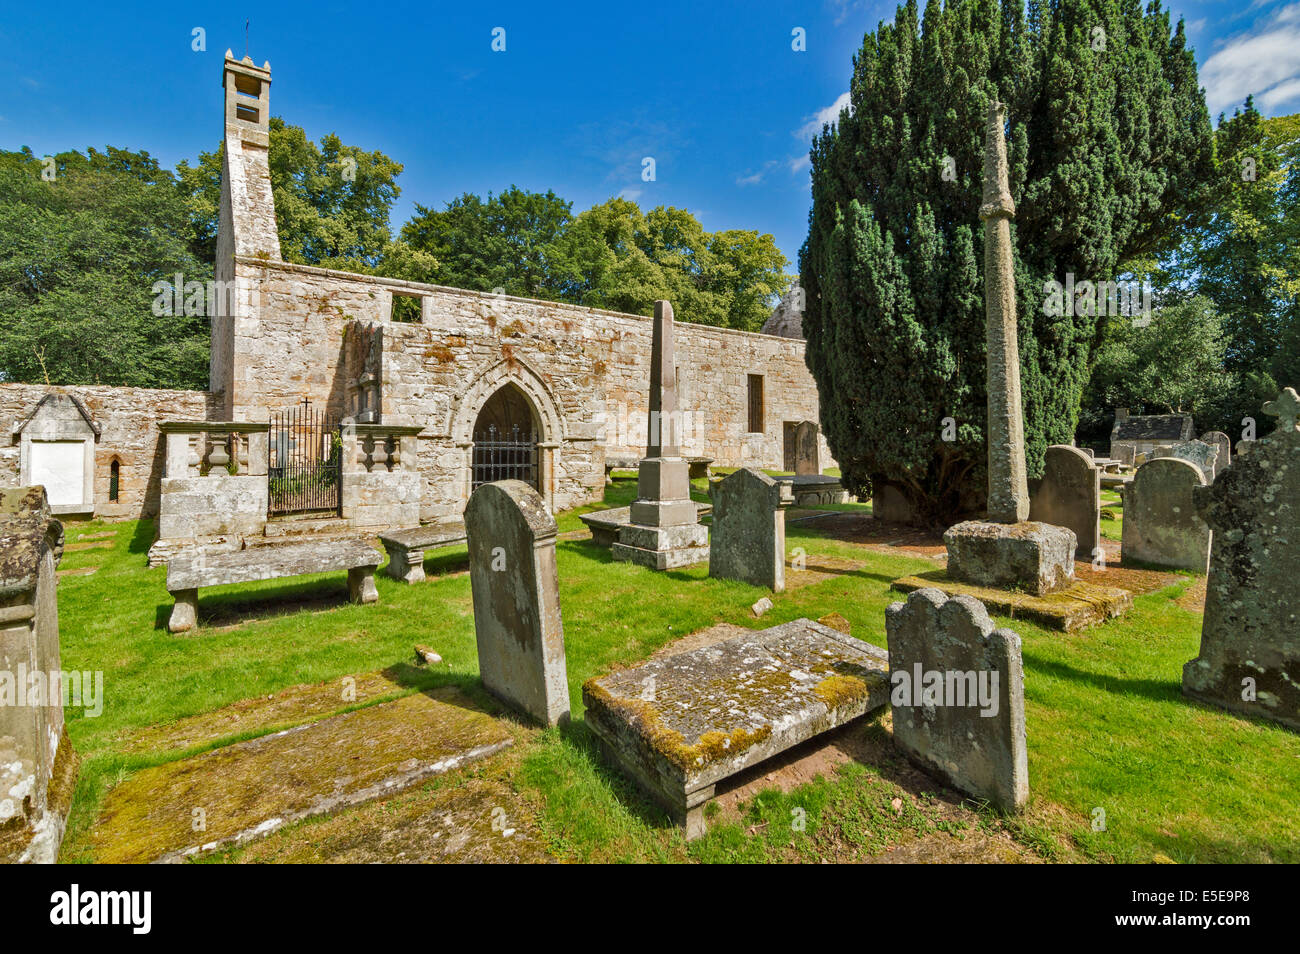 ST PETER'S KIRK OR CHURCH DUFFUS MORAY THE PORCH BURIAL GROUNDS AND MERCAT CROSS - Stock Image